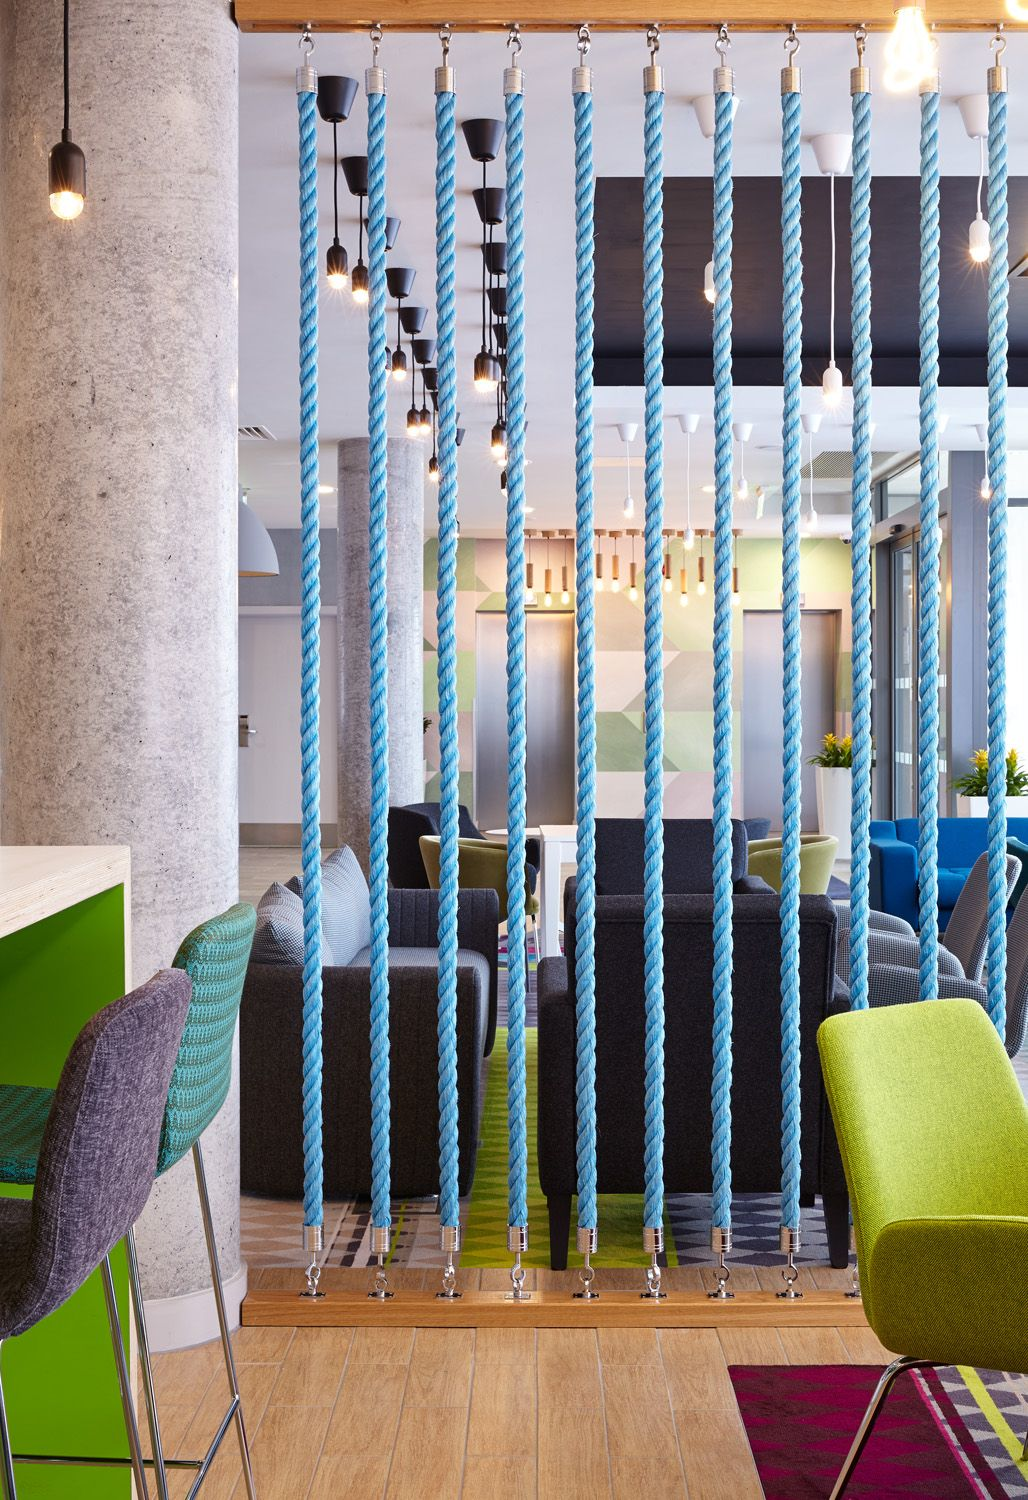 Holiday Inn Express Aberdeen | Fishing Boat Rope Screen Divider | Polished Concrete Column | Feature Lighting